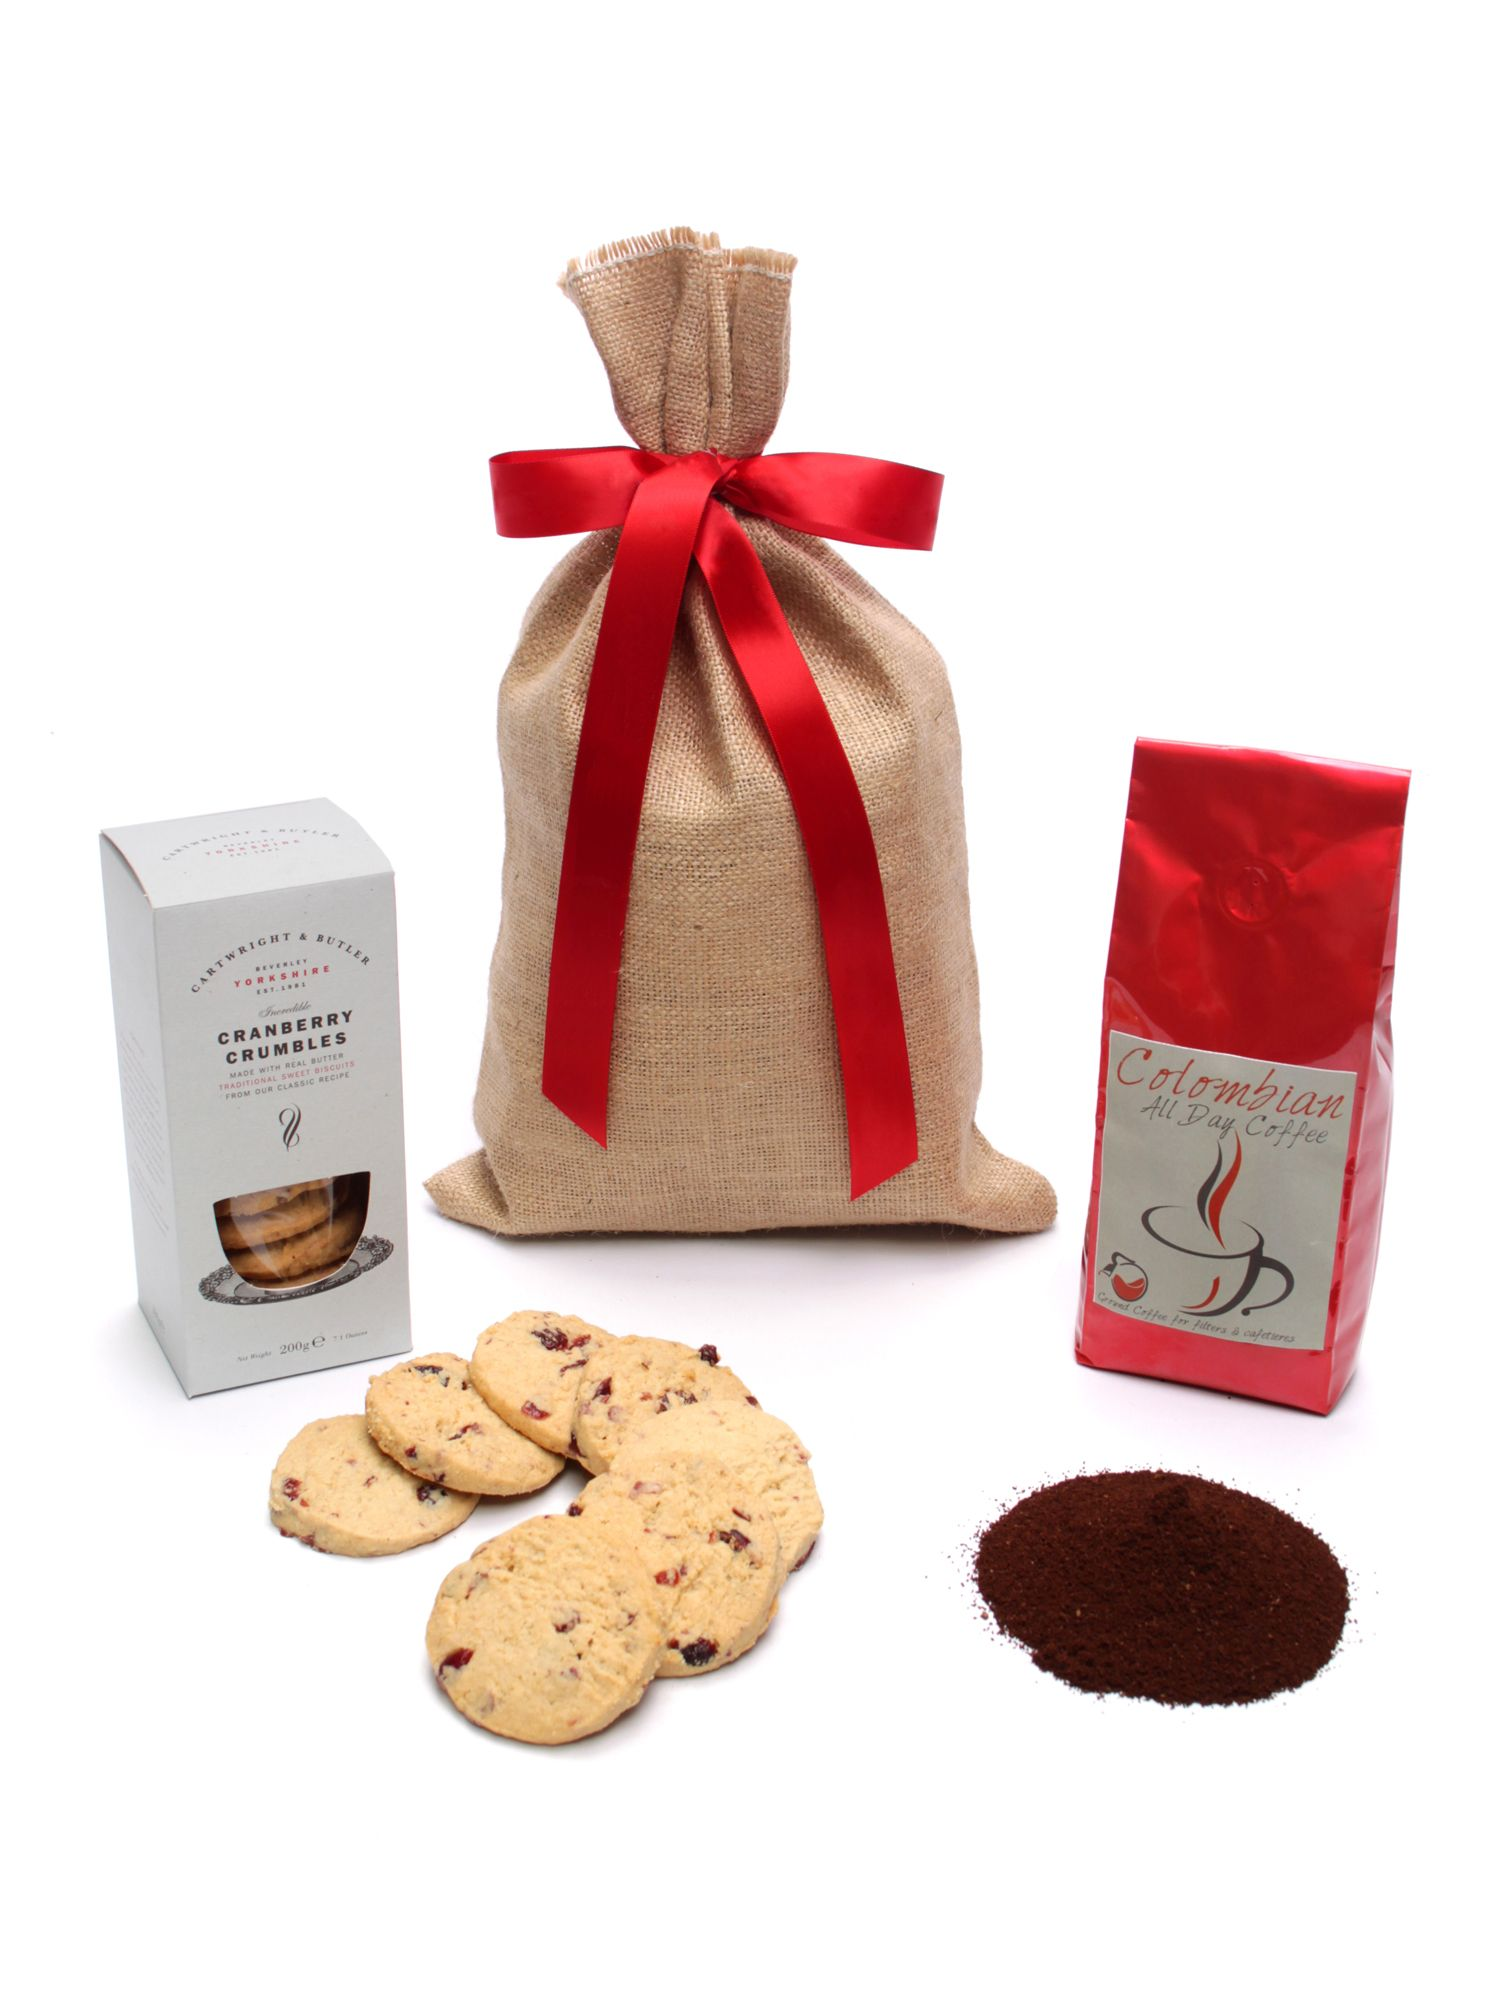 Floric Floric Ground Coffee & Biscuits Gift Sack